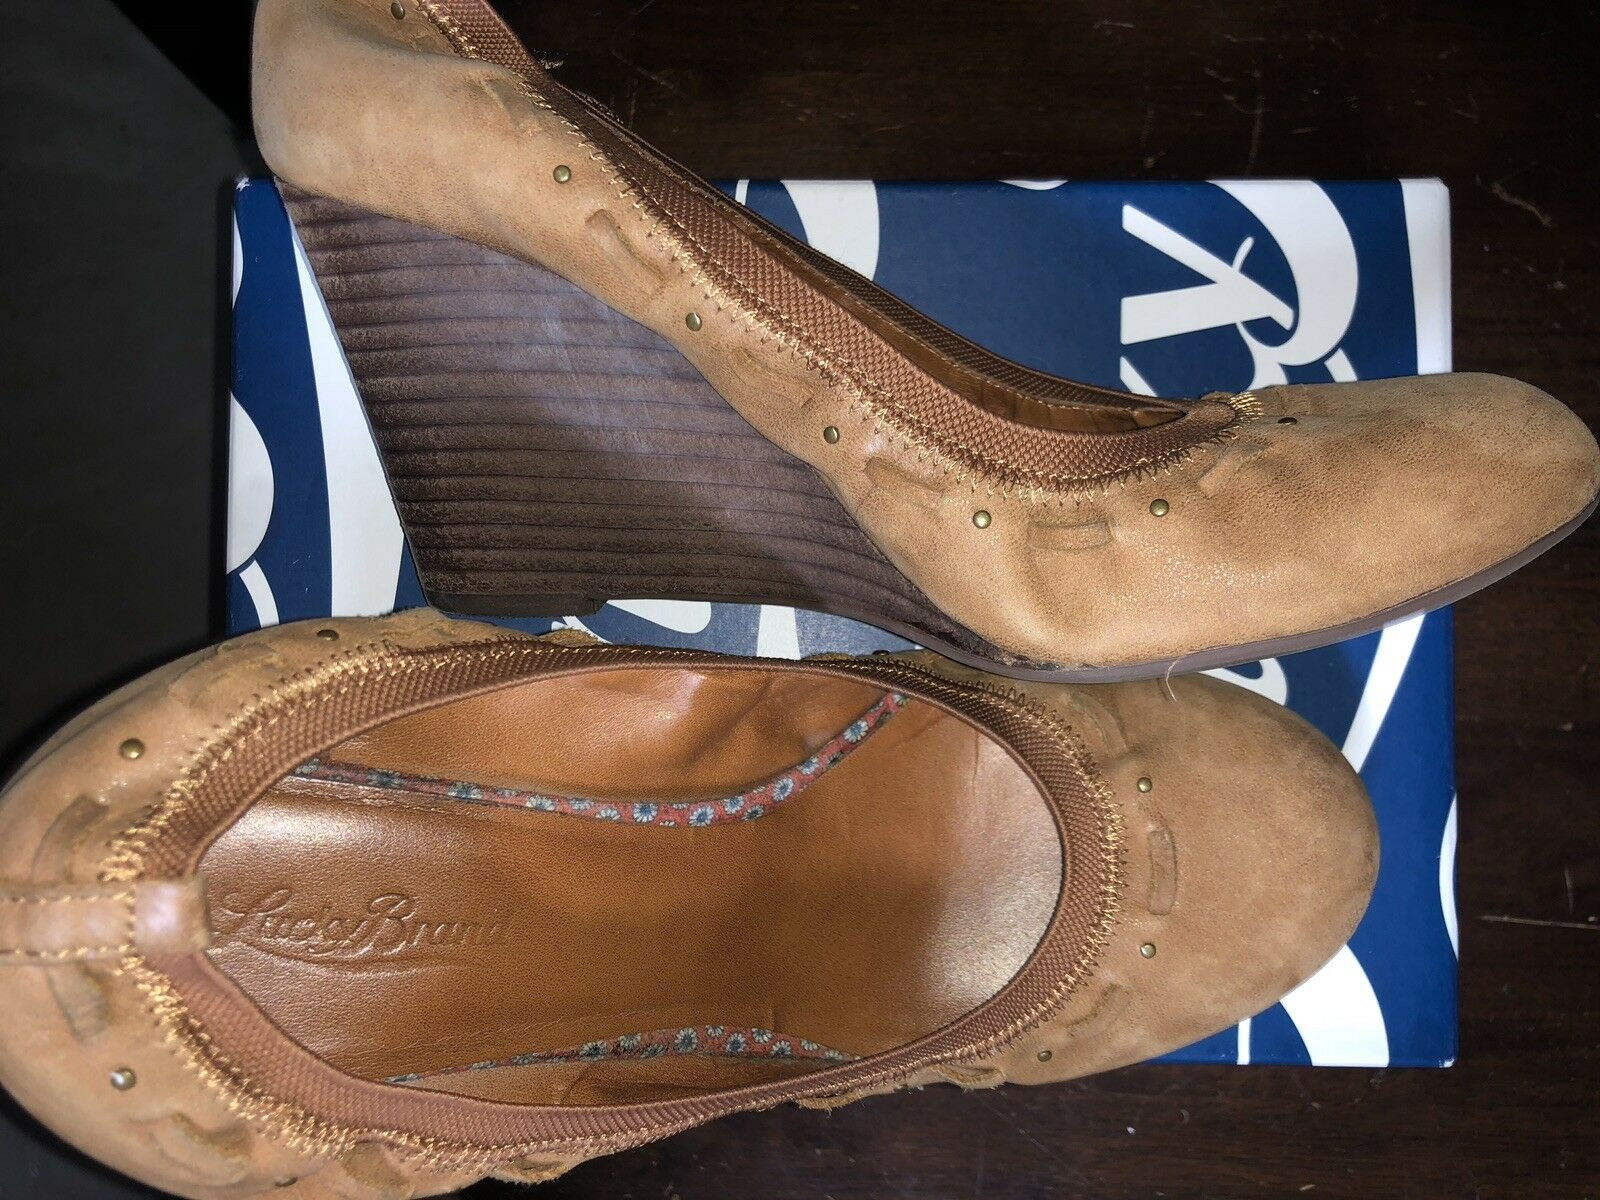 Lucky Brand Medium braun Round Toe Leather Leather Leather Ballet Wedges damen's 9 56295d